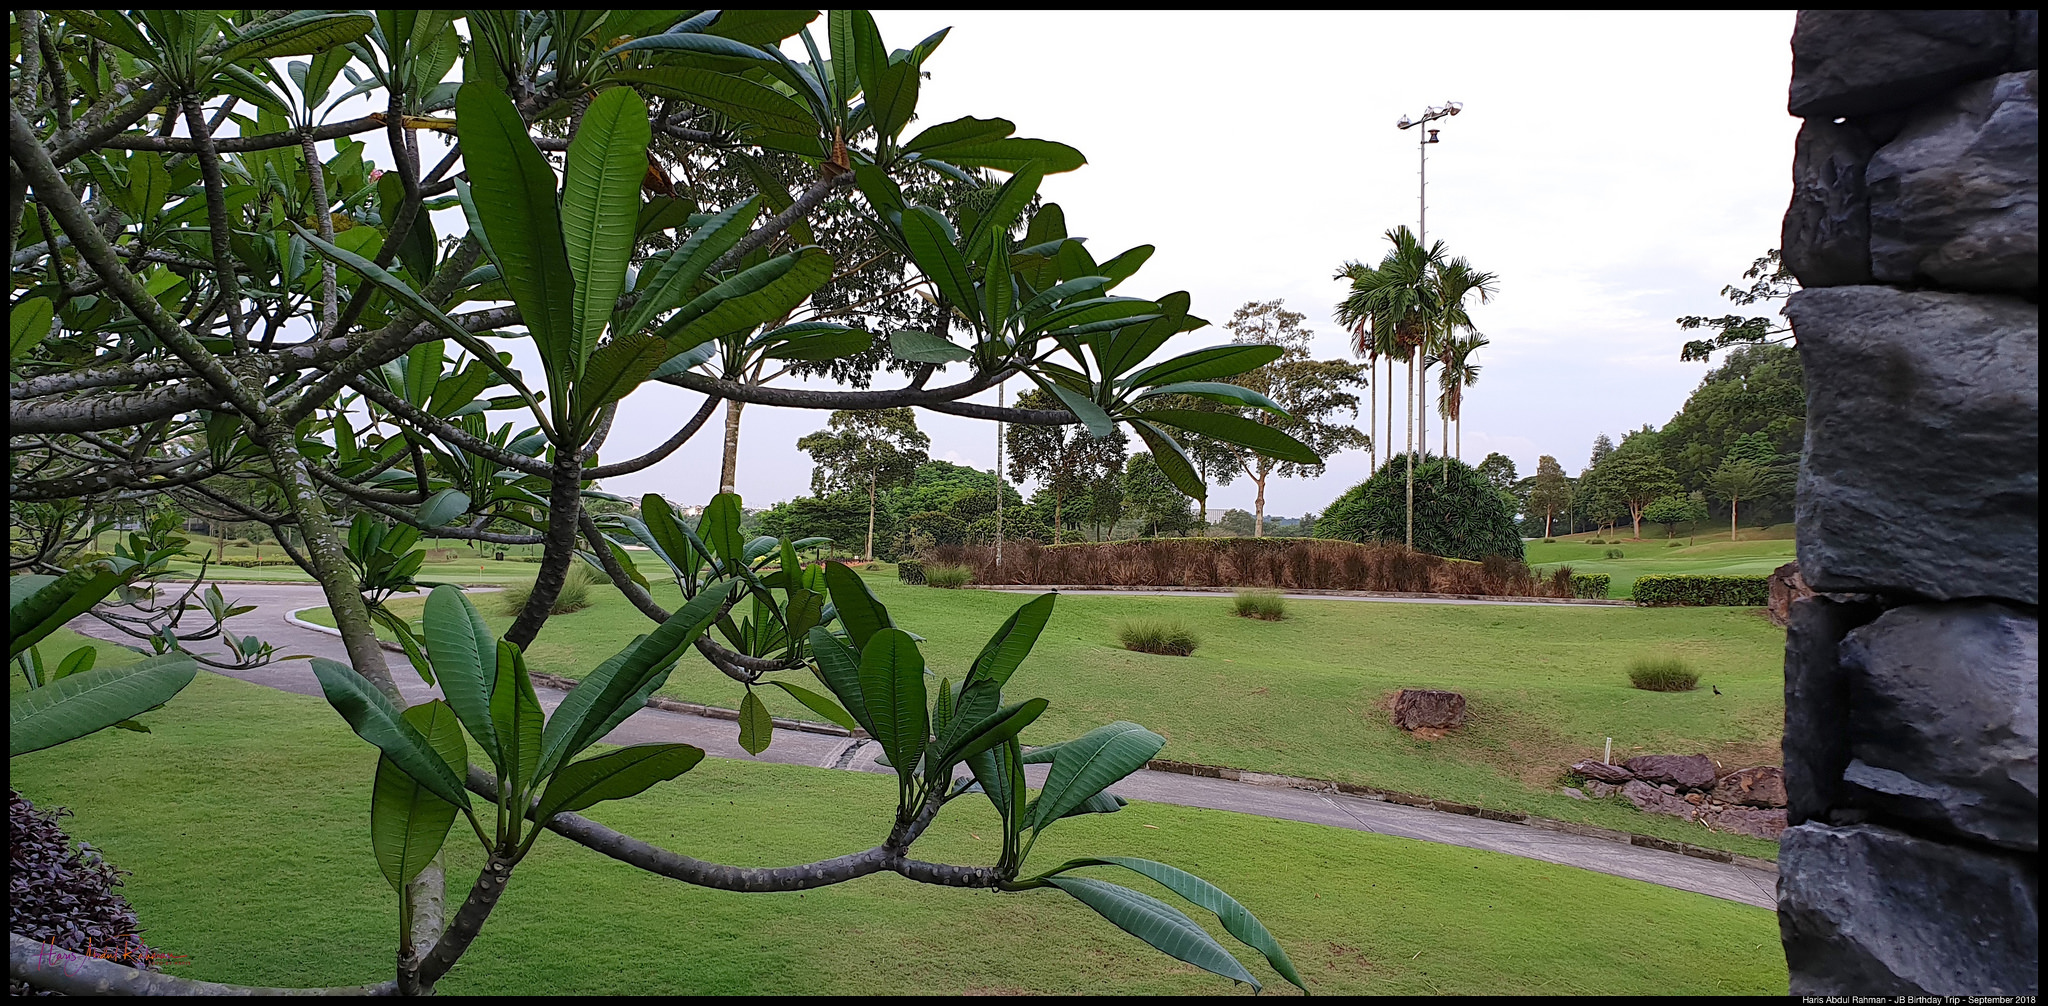 The greenery of the golf course